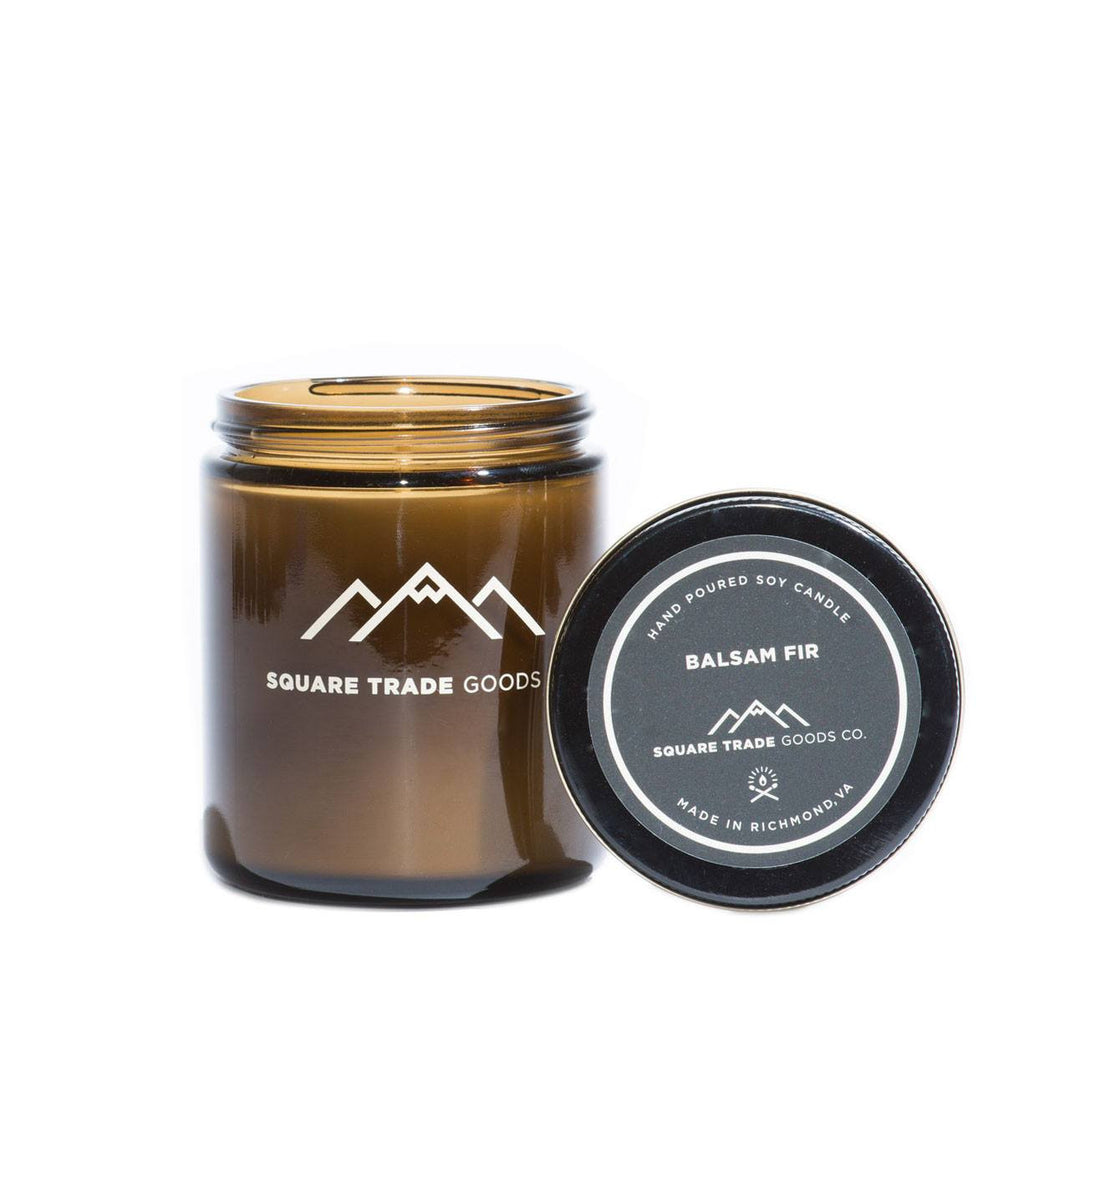 Square Trade Goods Candle - Balsam Fir - Home Essentials - Iron and Resin